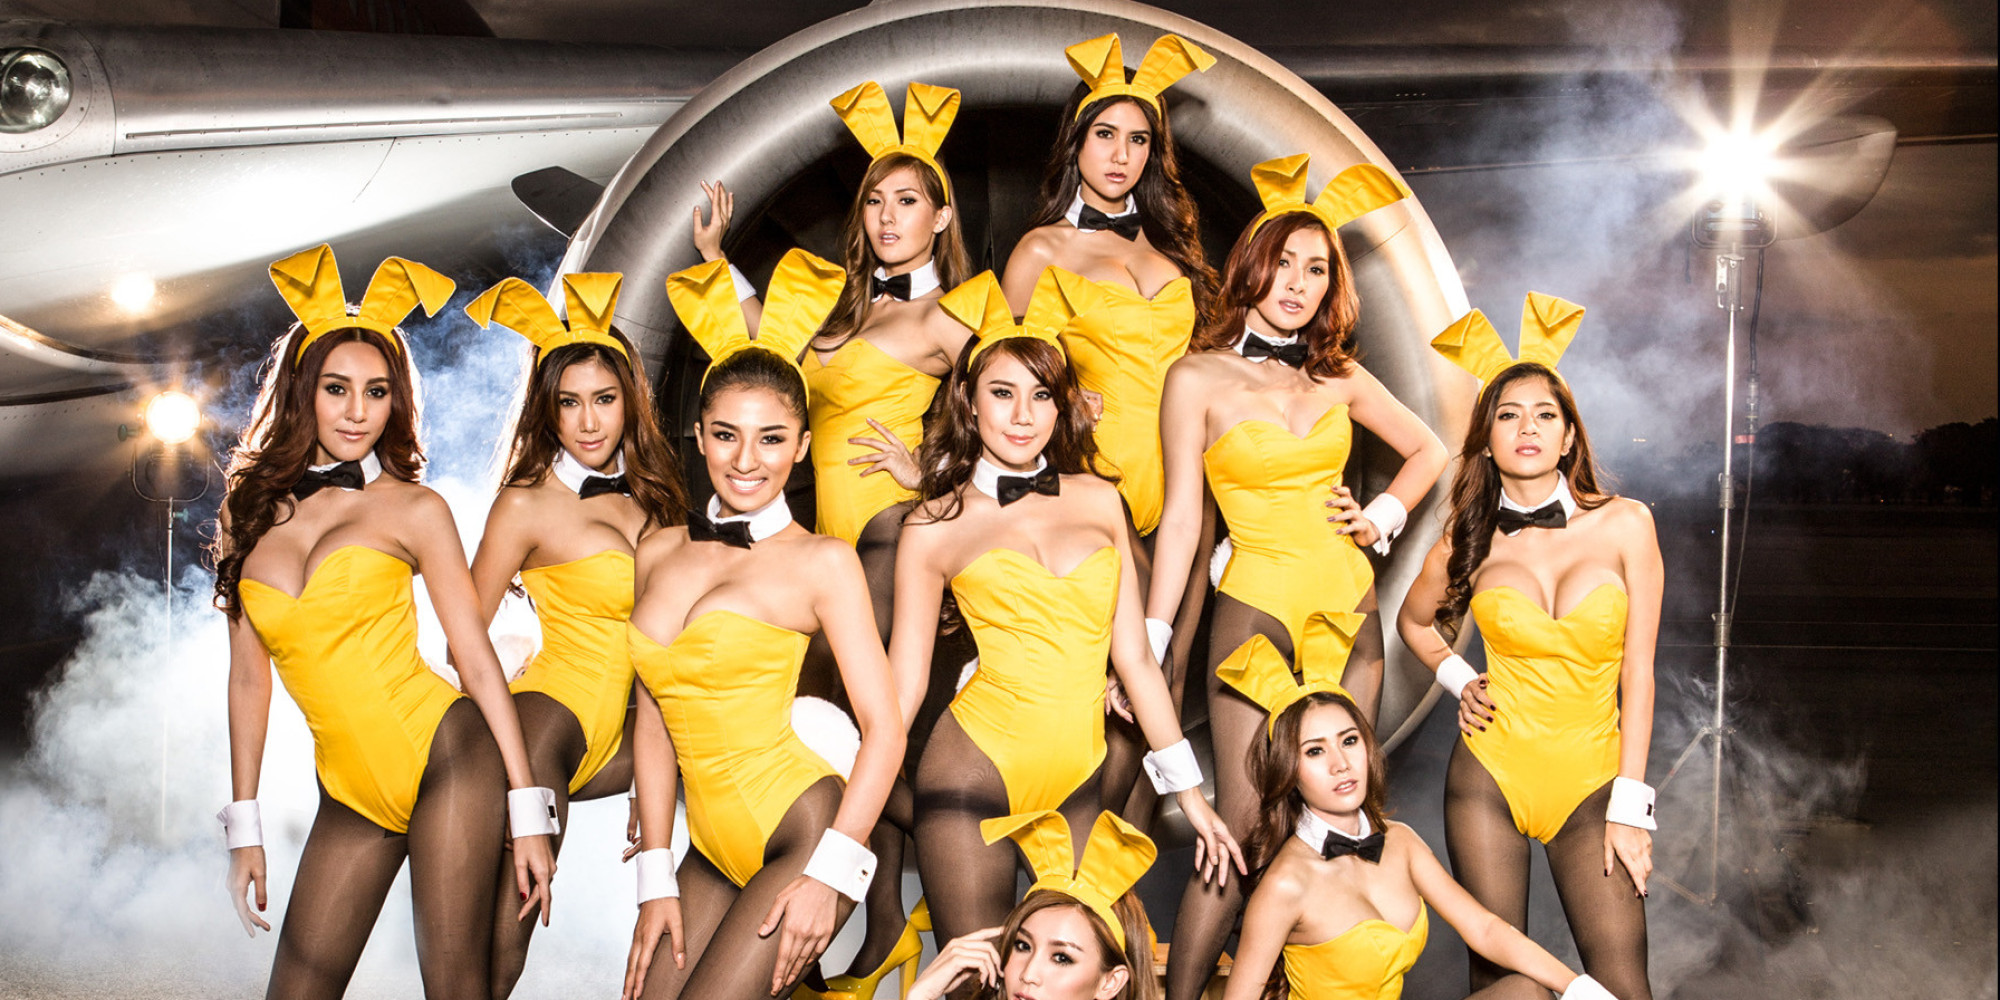 nok air recruits playboy bunnies for 2014 calendar huffpost. Black Bedroom Furniture Sets. Home Design Ideas